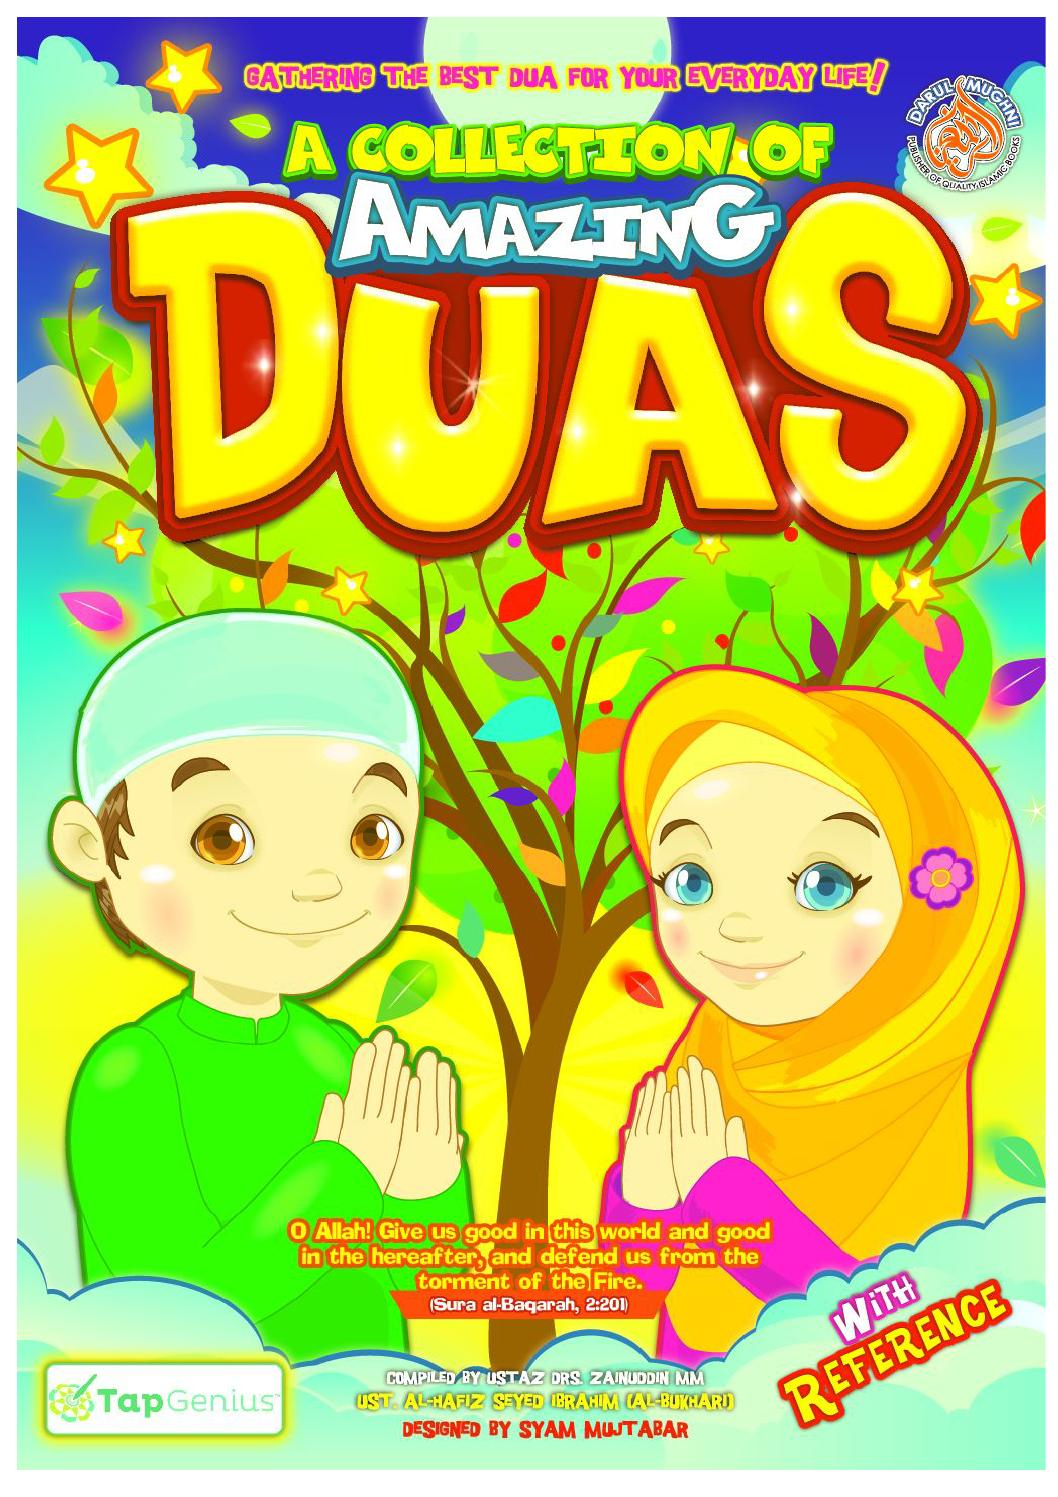 Tap Genius - A Collection of Amazing Duas (Coming Soon) by